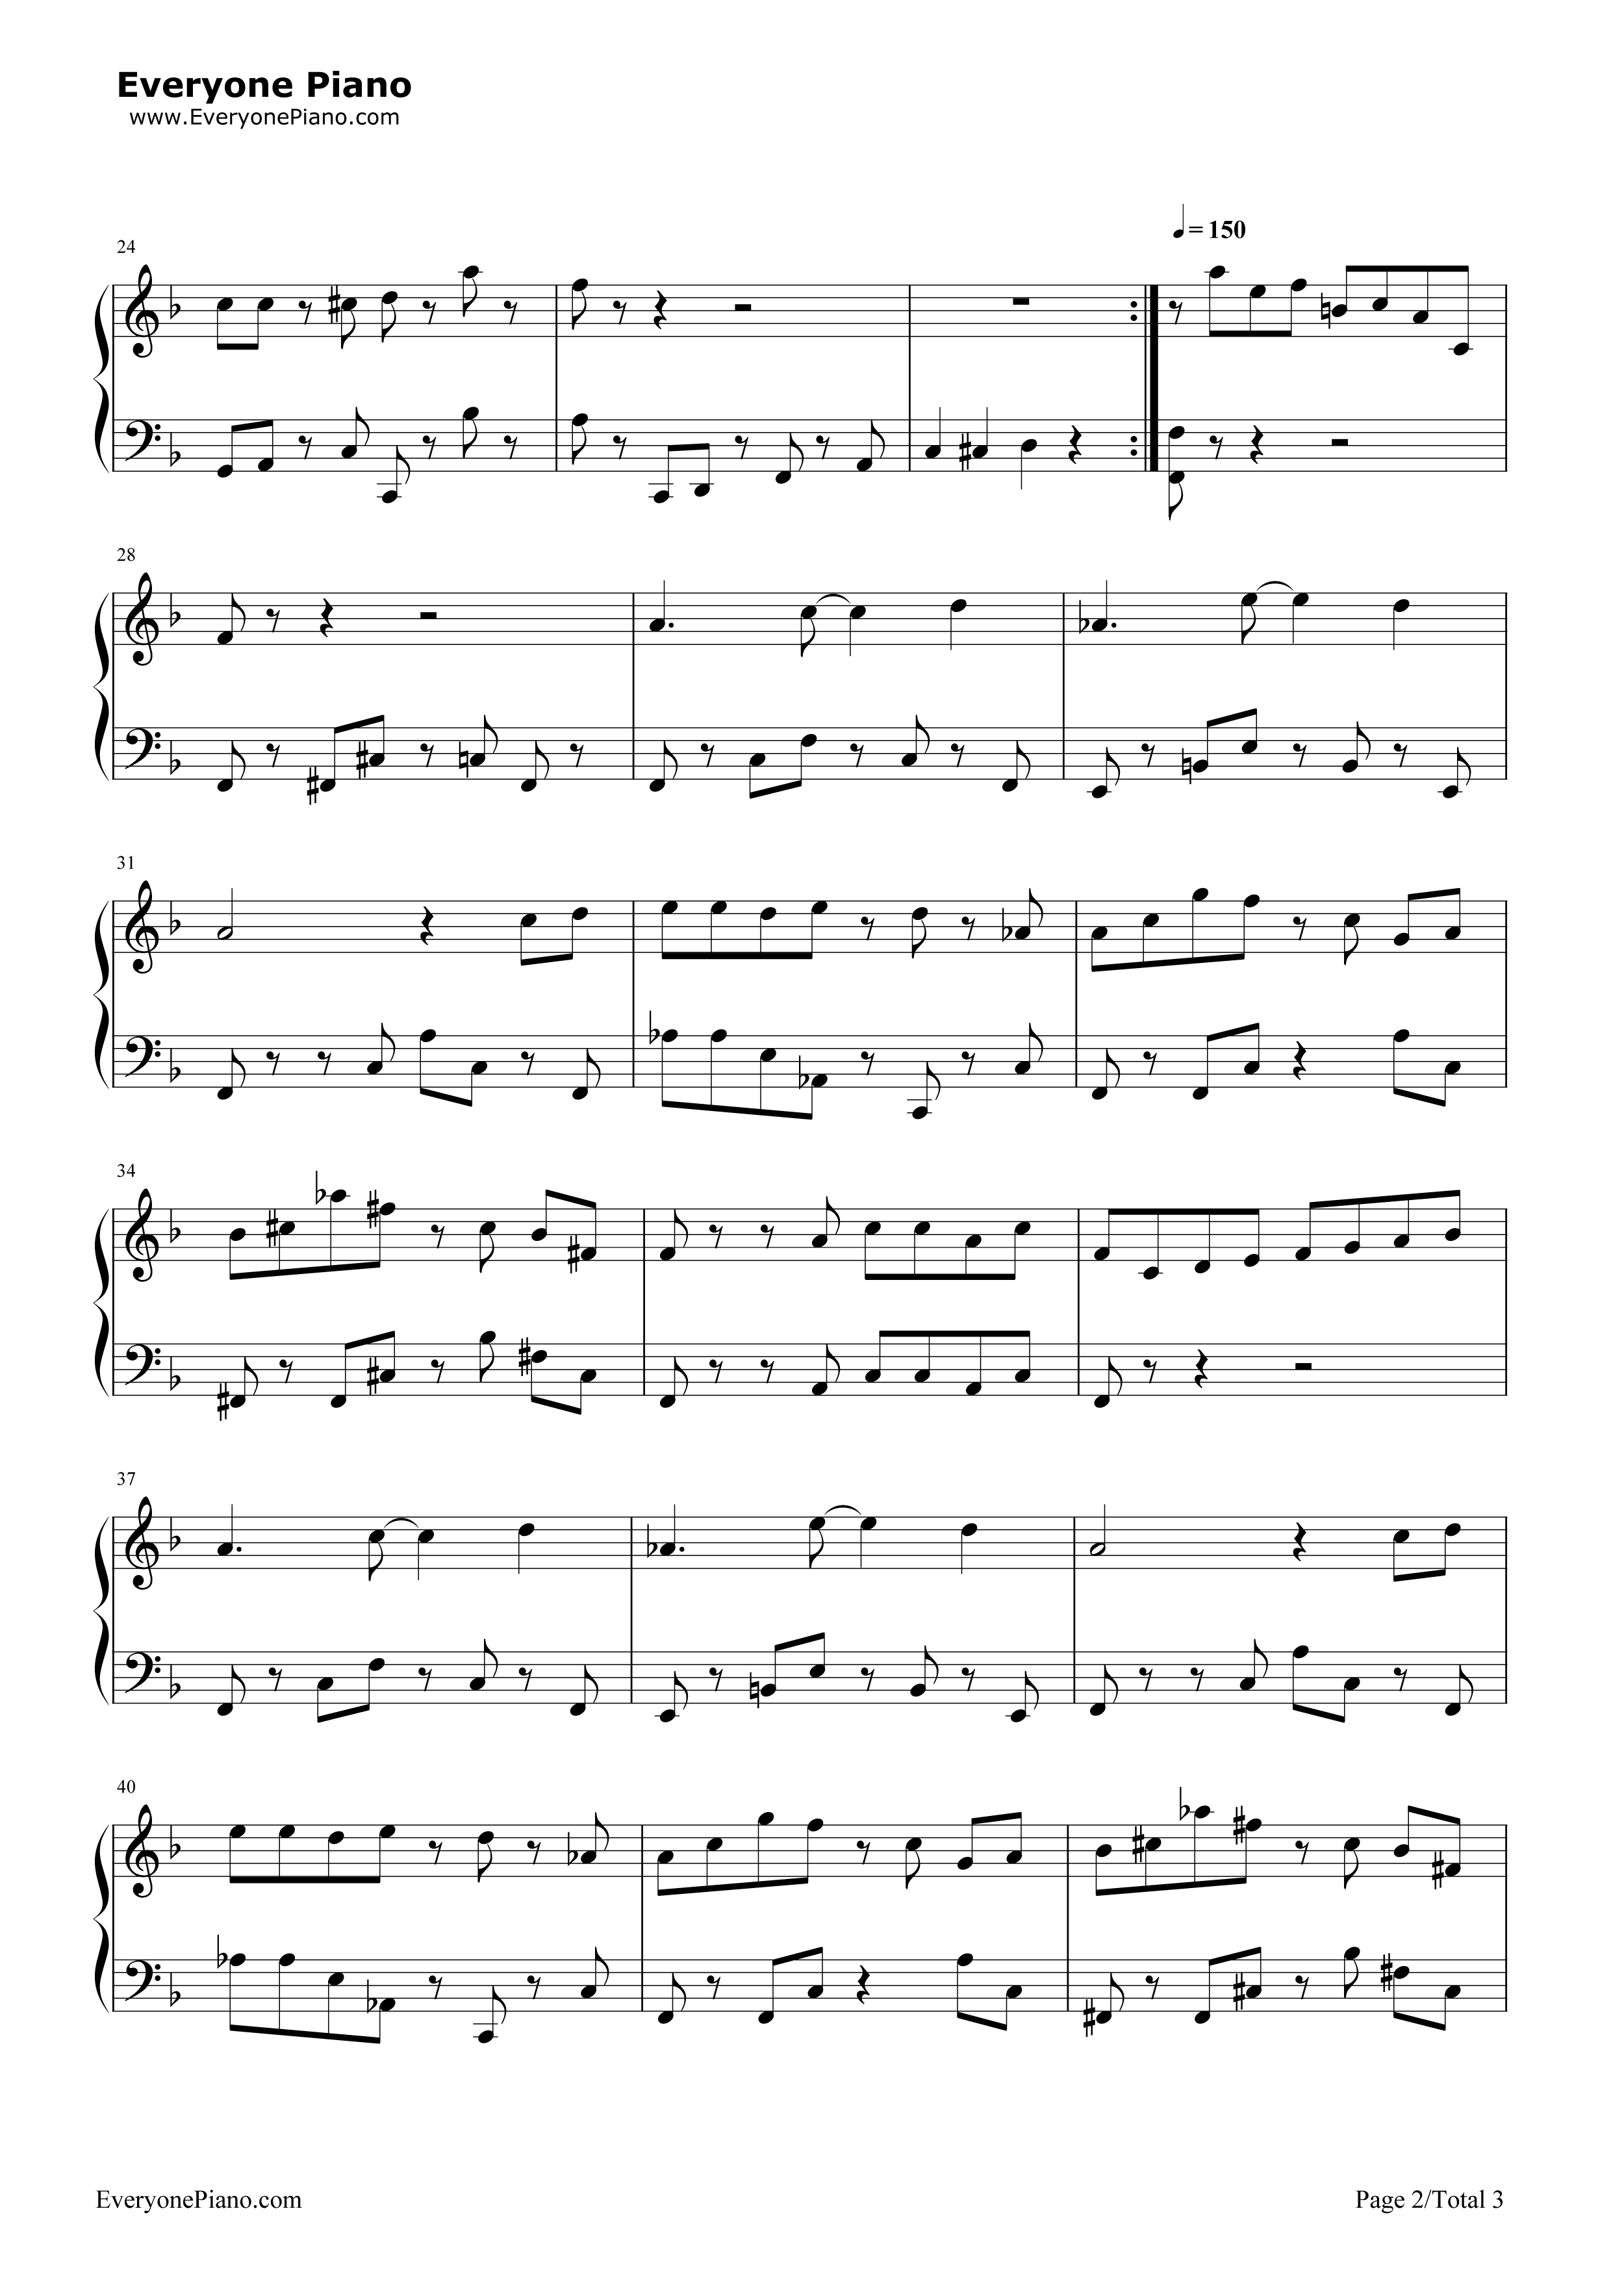 Maplestory bgm stave preview 2 free piano sheet music piano chords listen now print sheet maplestory bgm stave preview 2 hexwebz Gallery